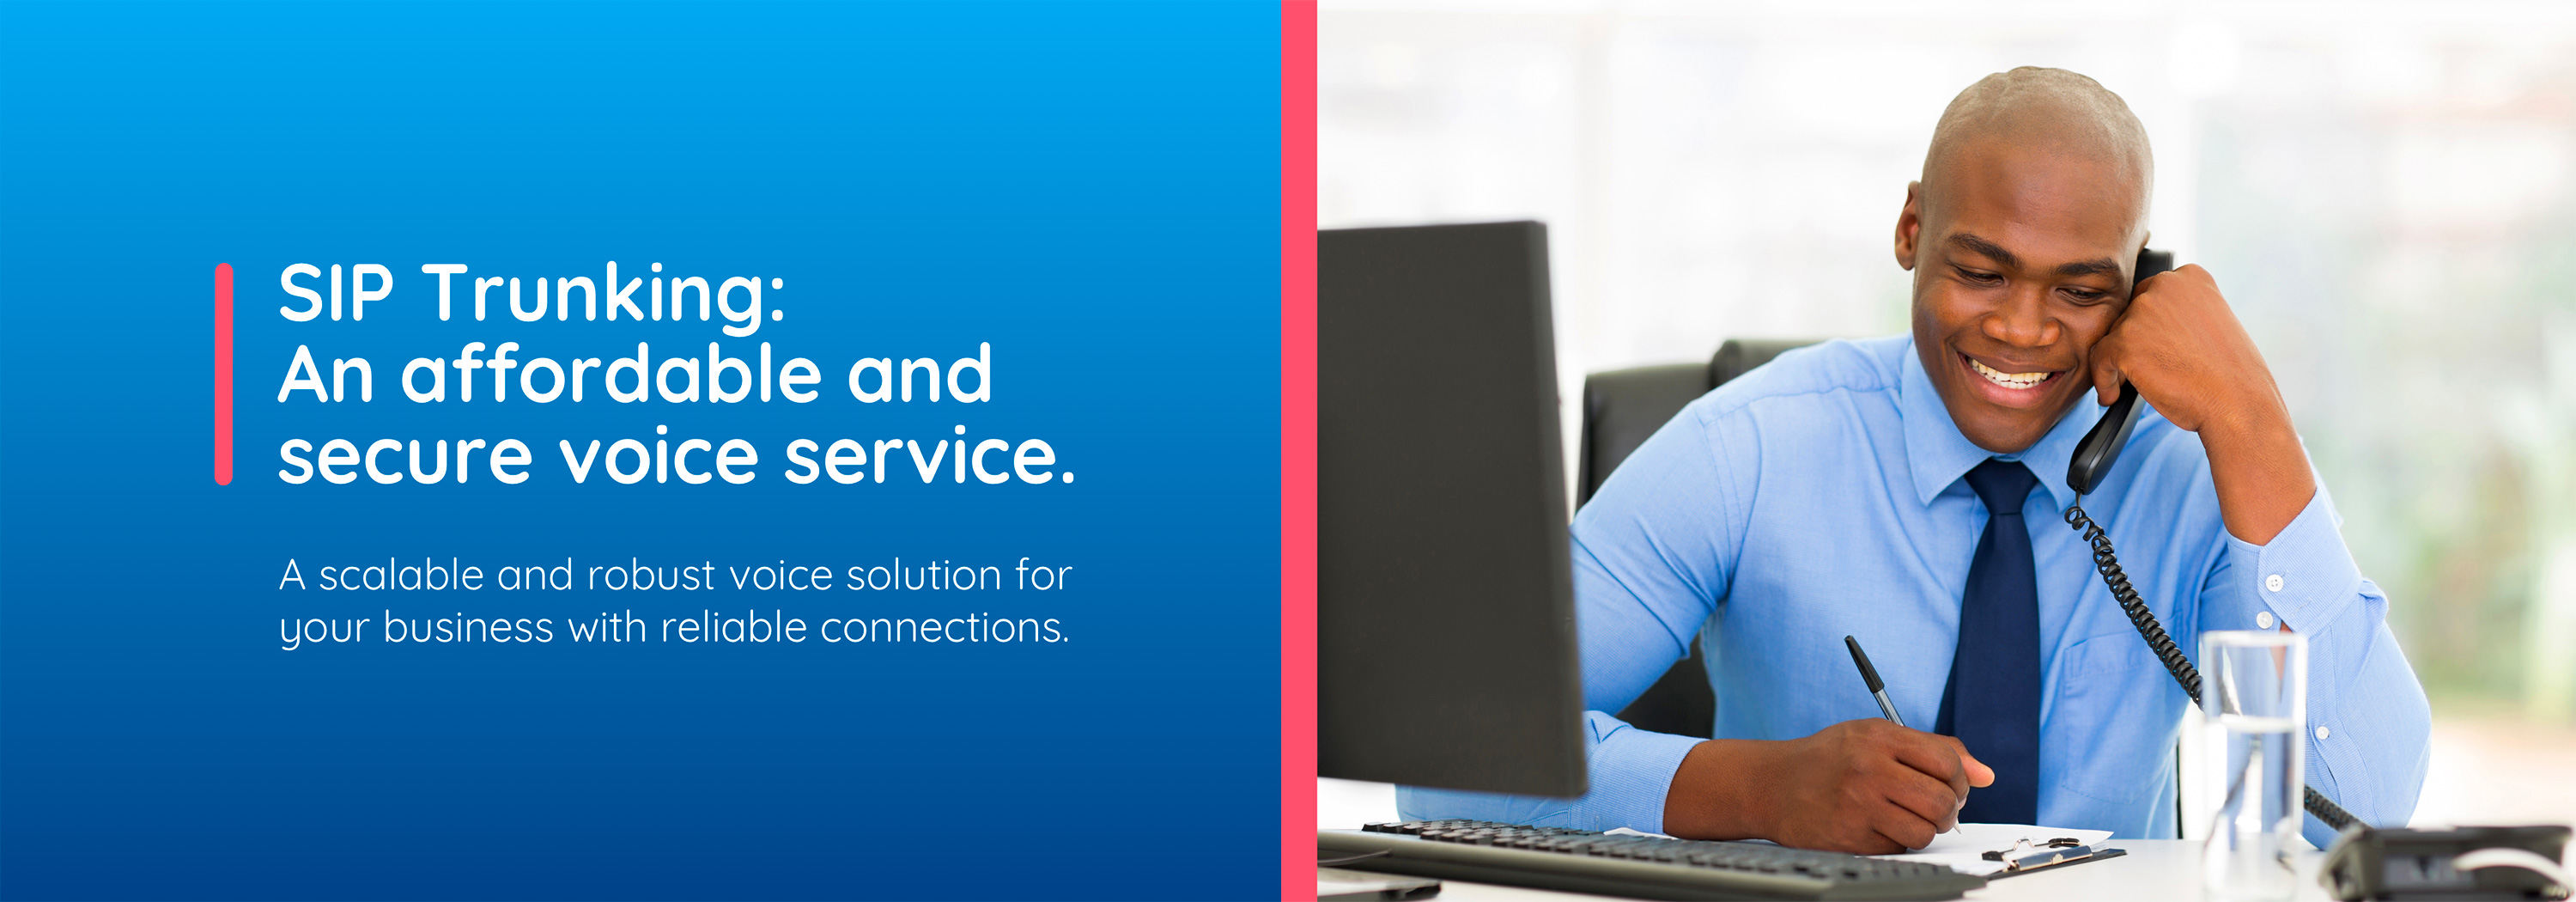 SIP Trunking: 